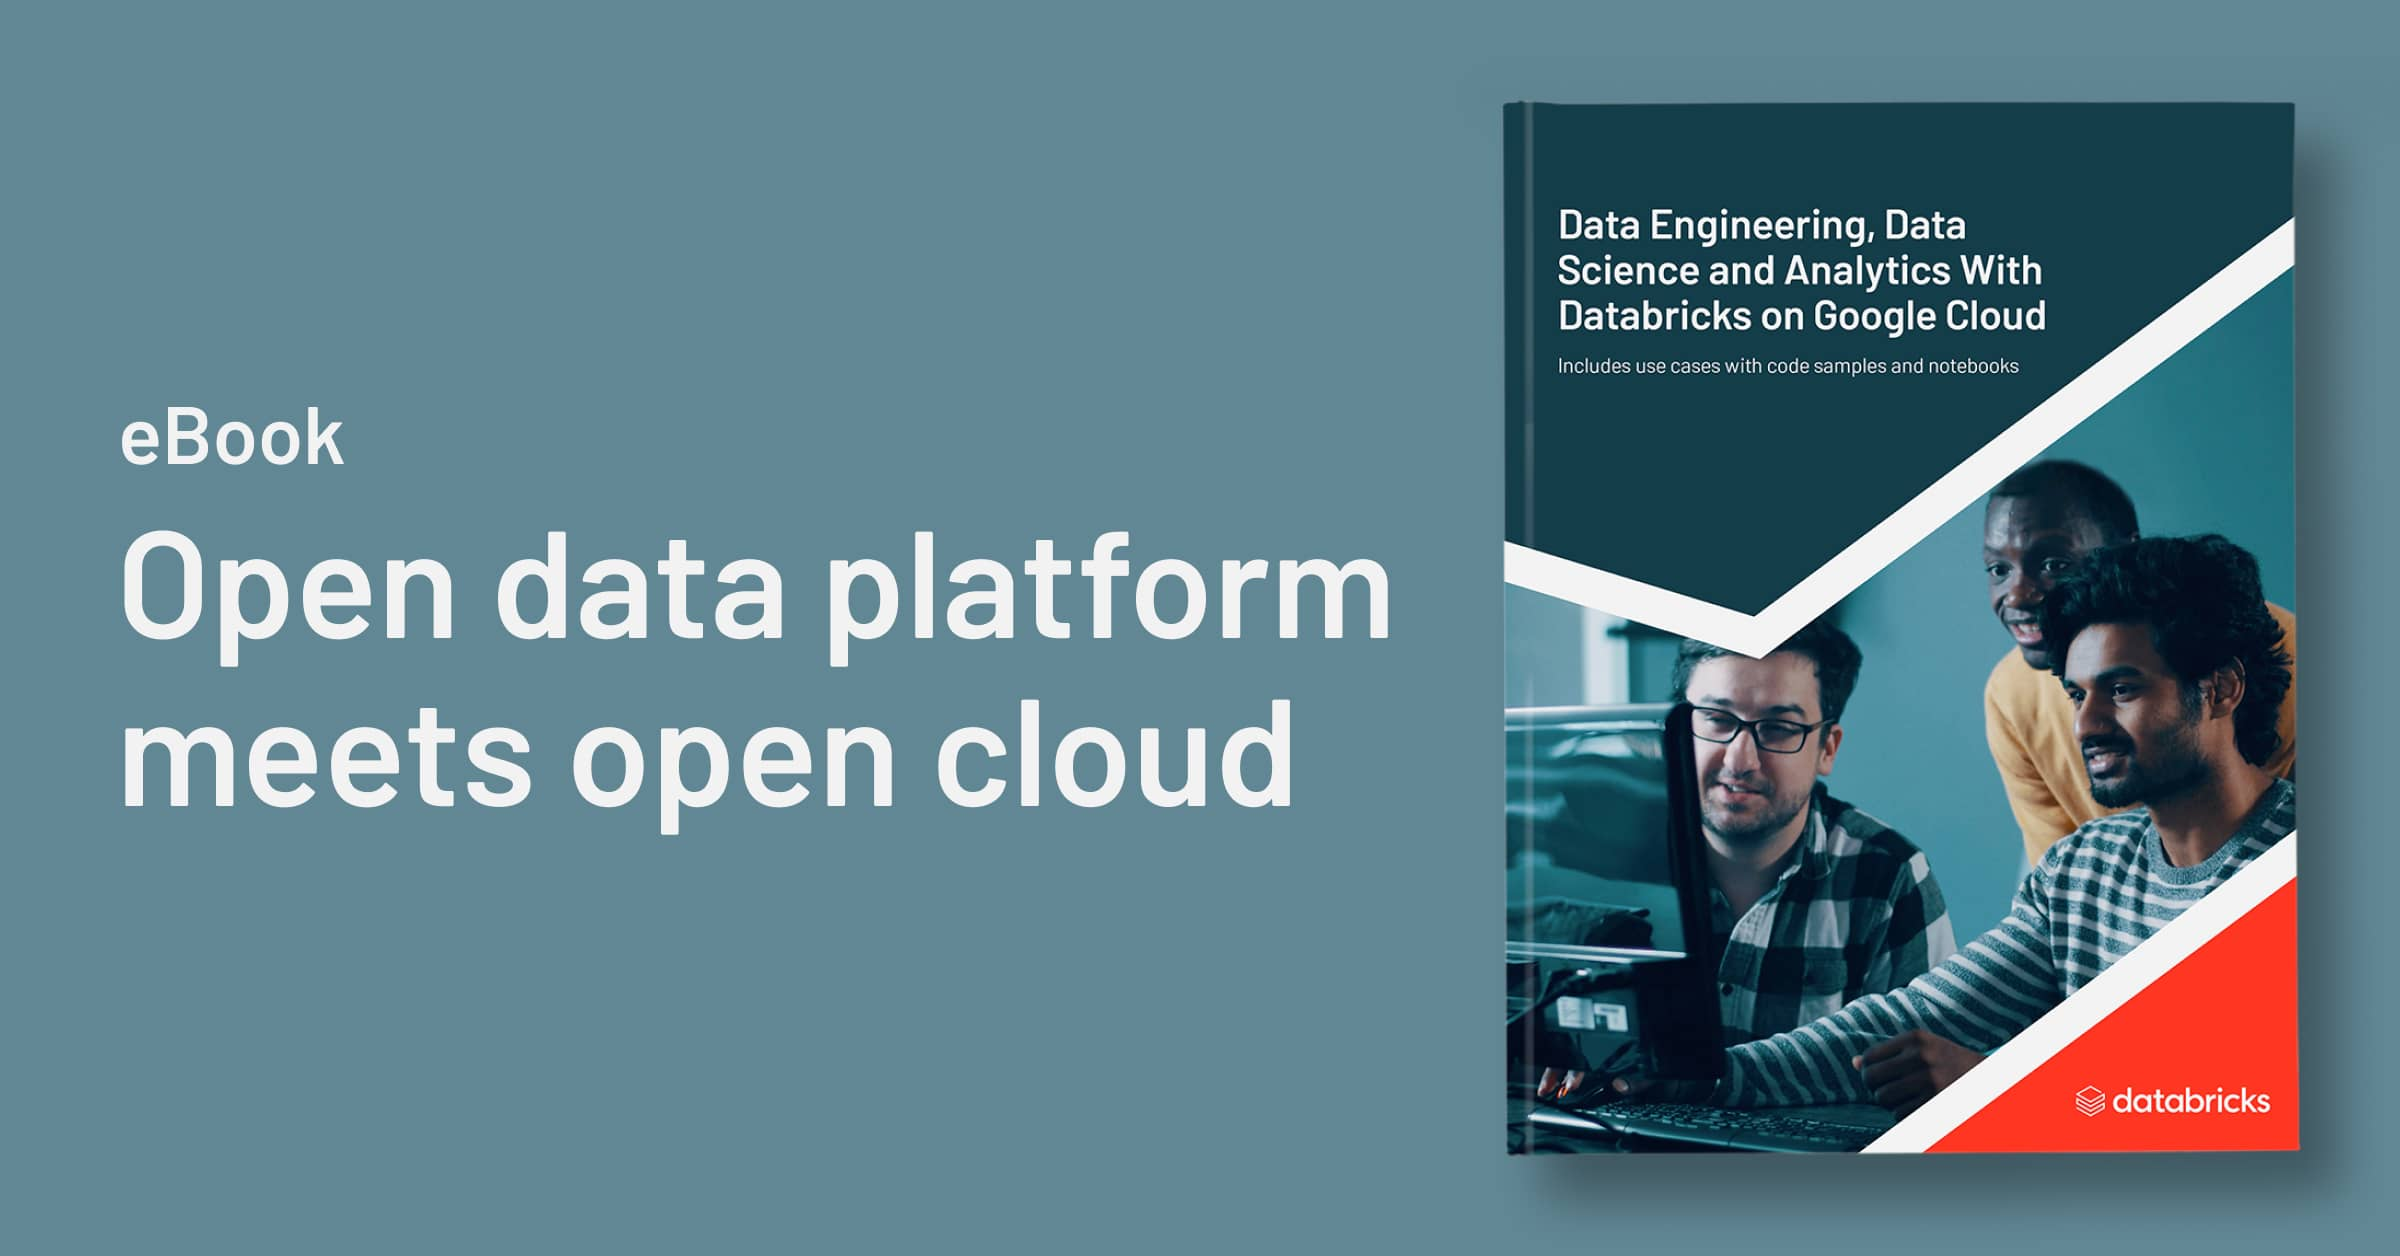 Thumbnail for Data Engineering, Data Science and Analytics With Databricks on Google Cloud